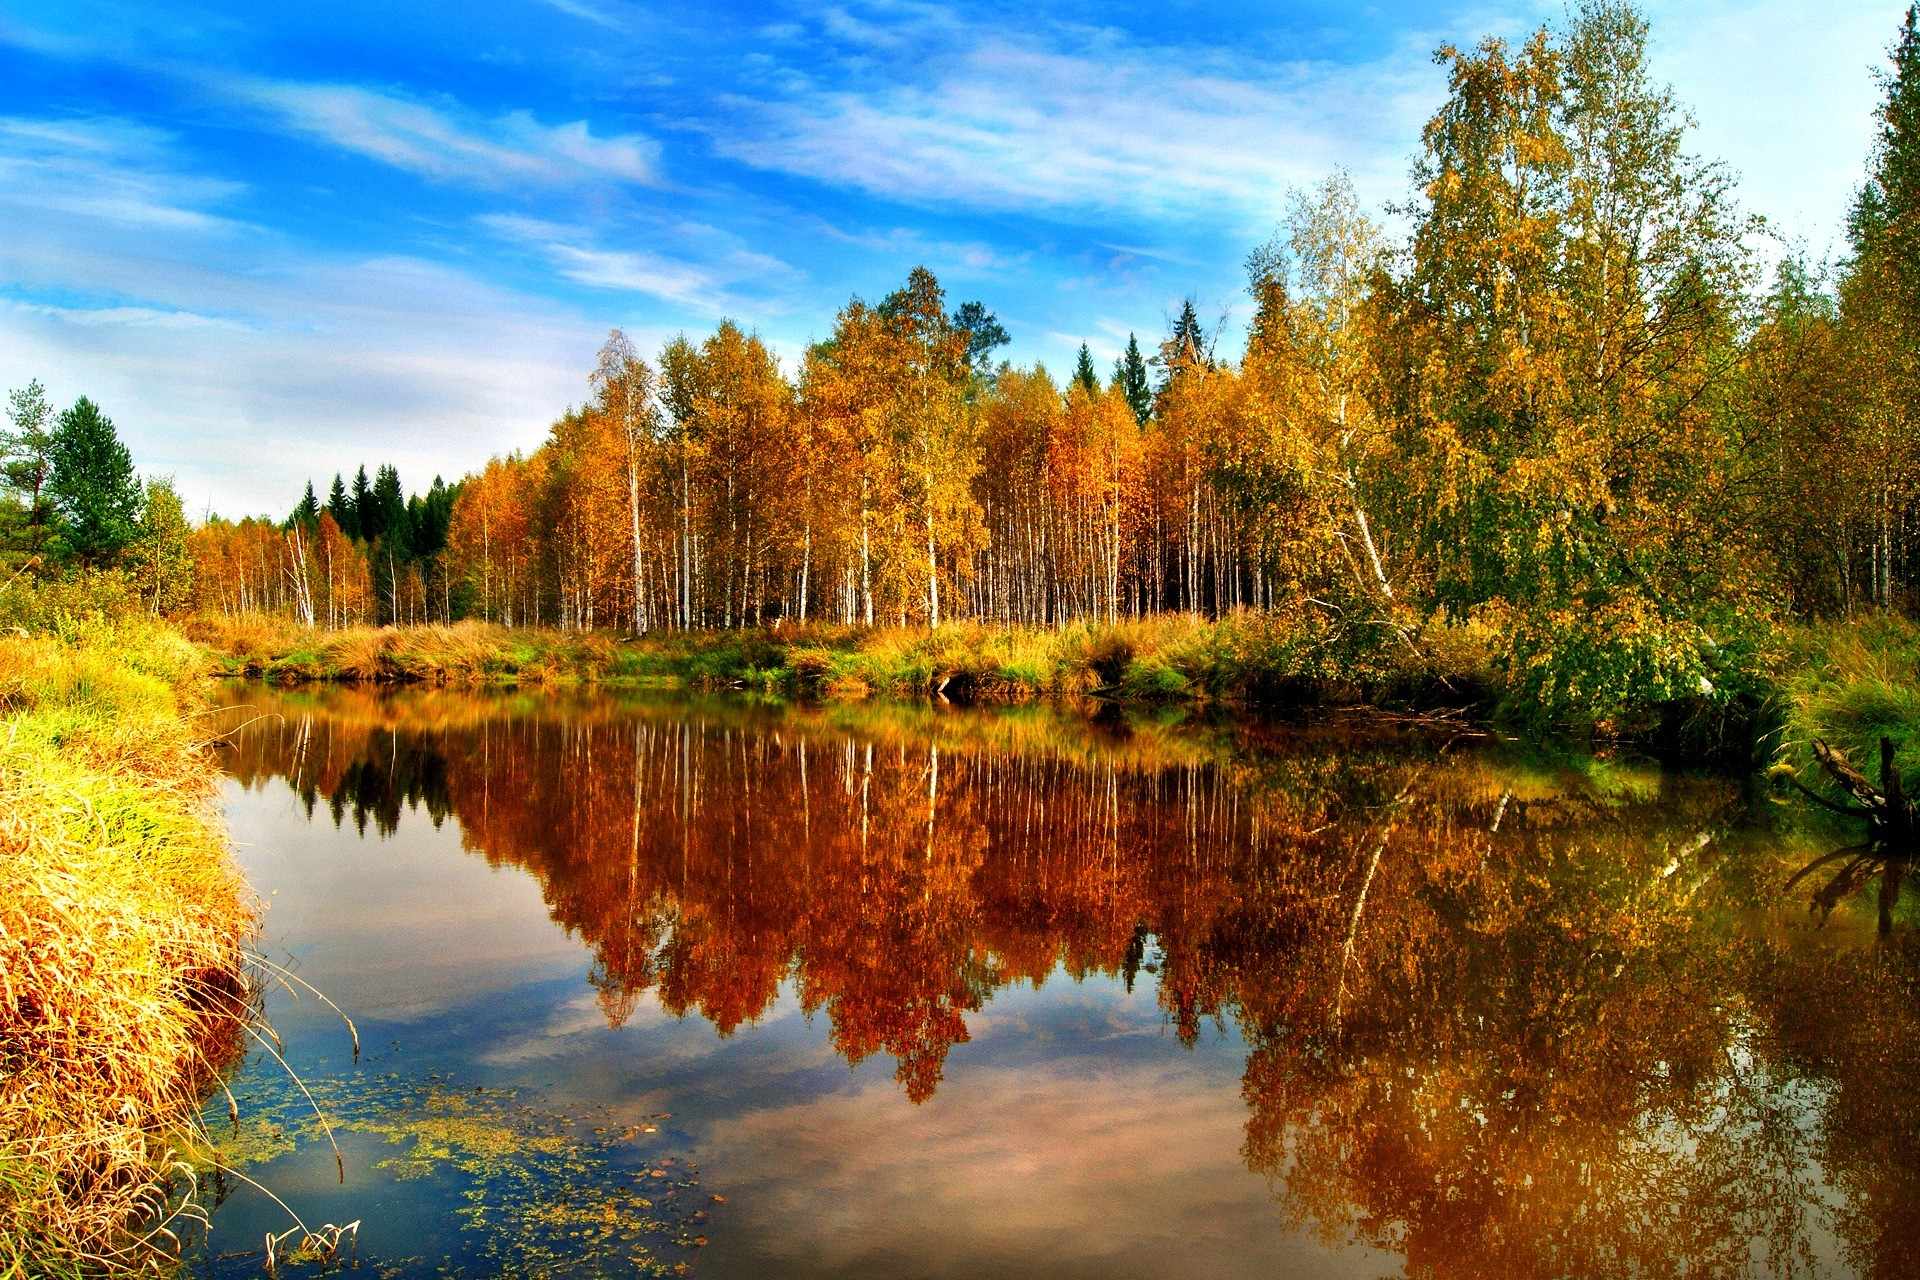 Lake: Peaceful Water View Fall Sky River Clouds Autumn Reflection ...